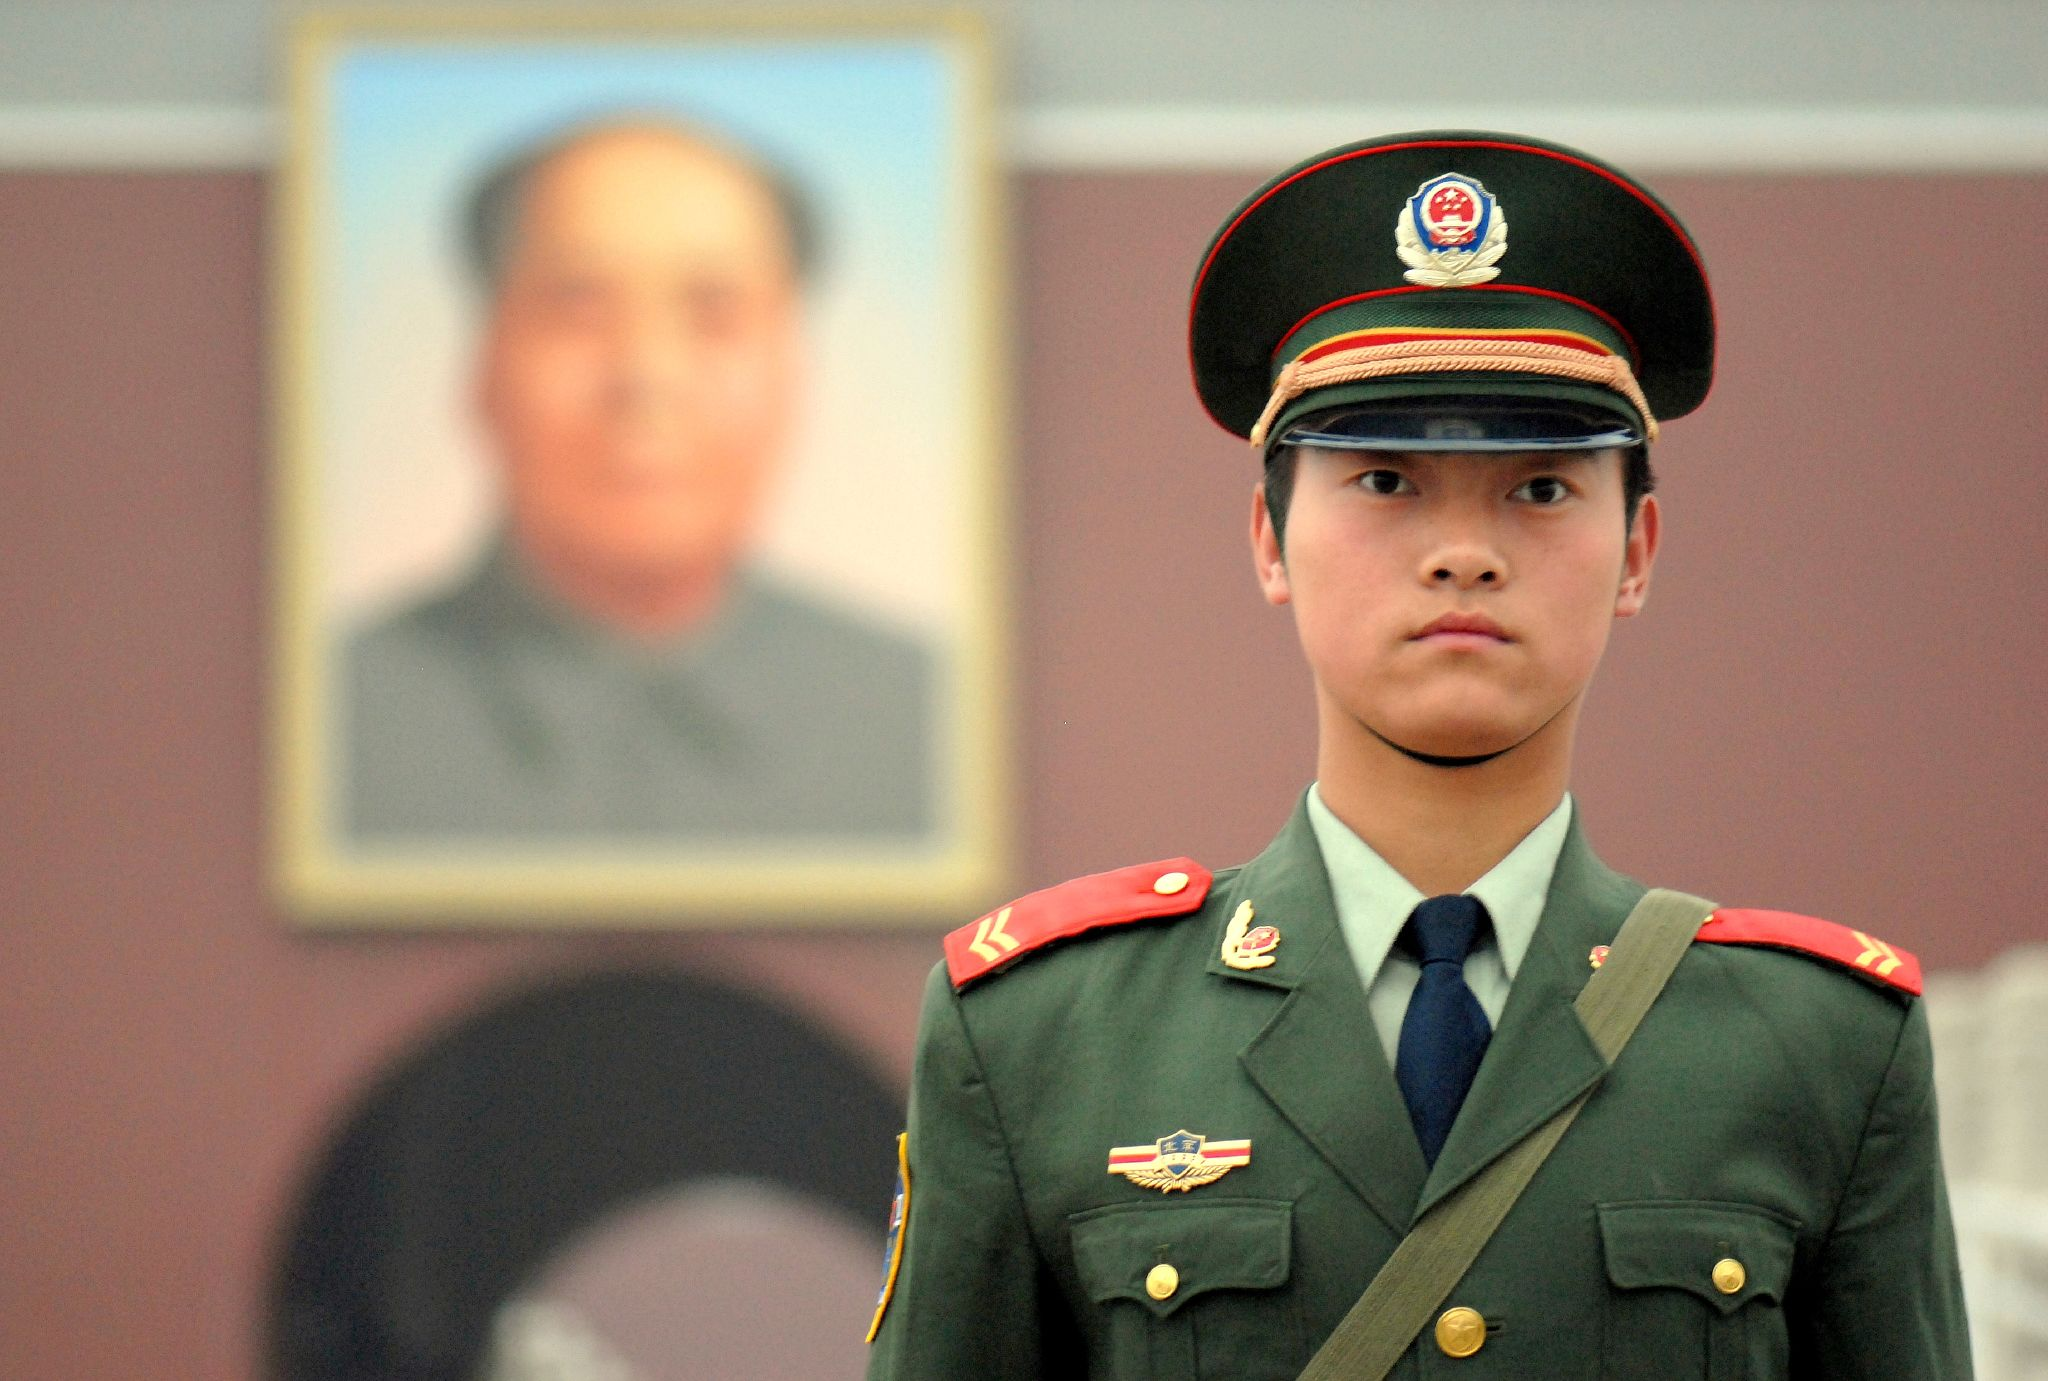 File:Chinese soldier on Tienanmen Square.jpg - Wikimedia Commons